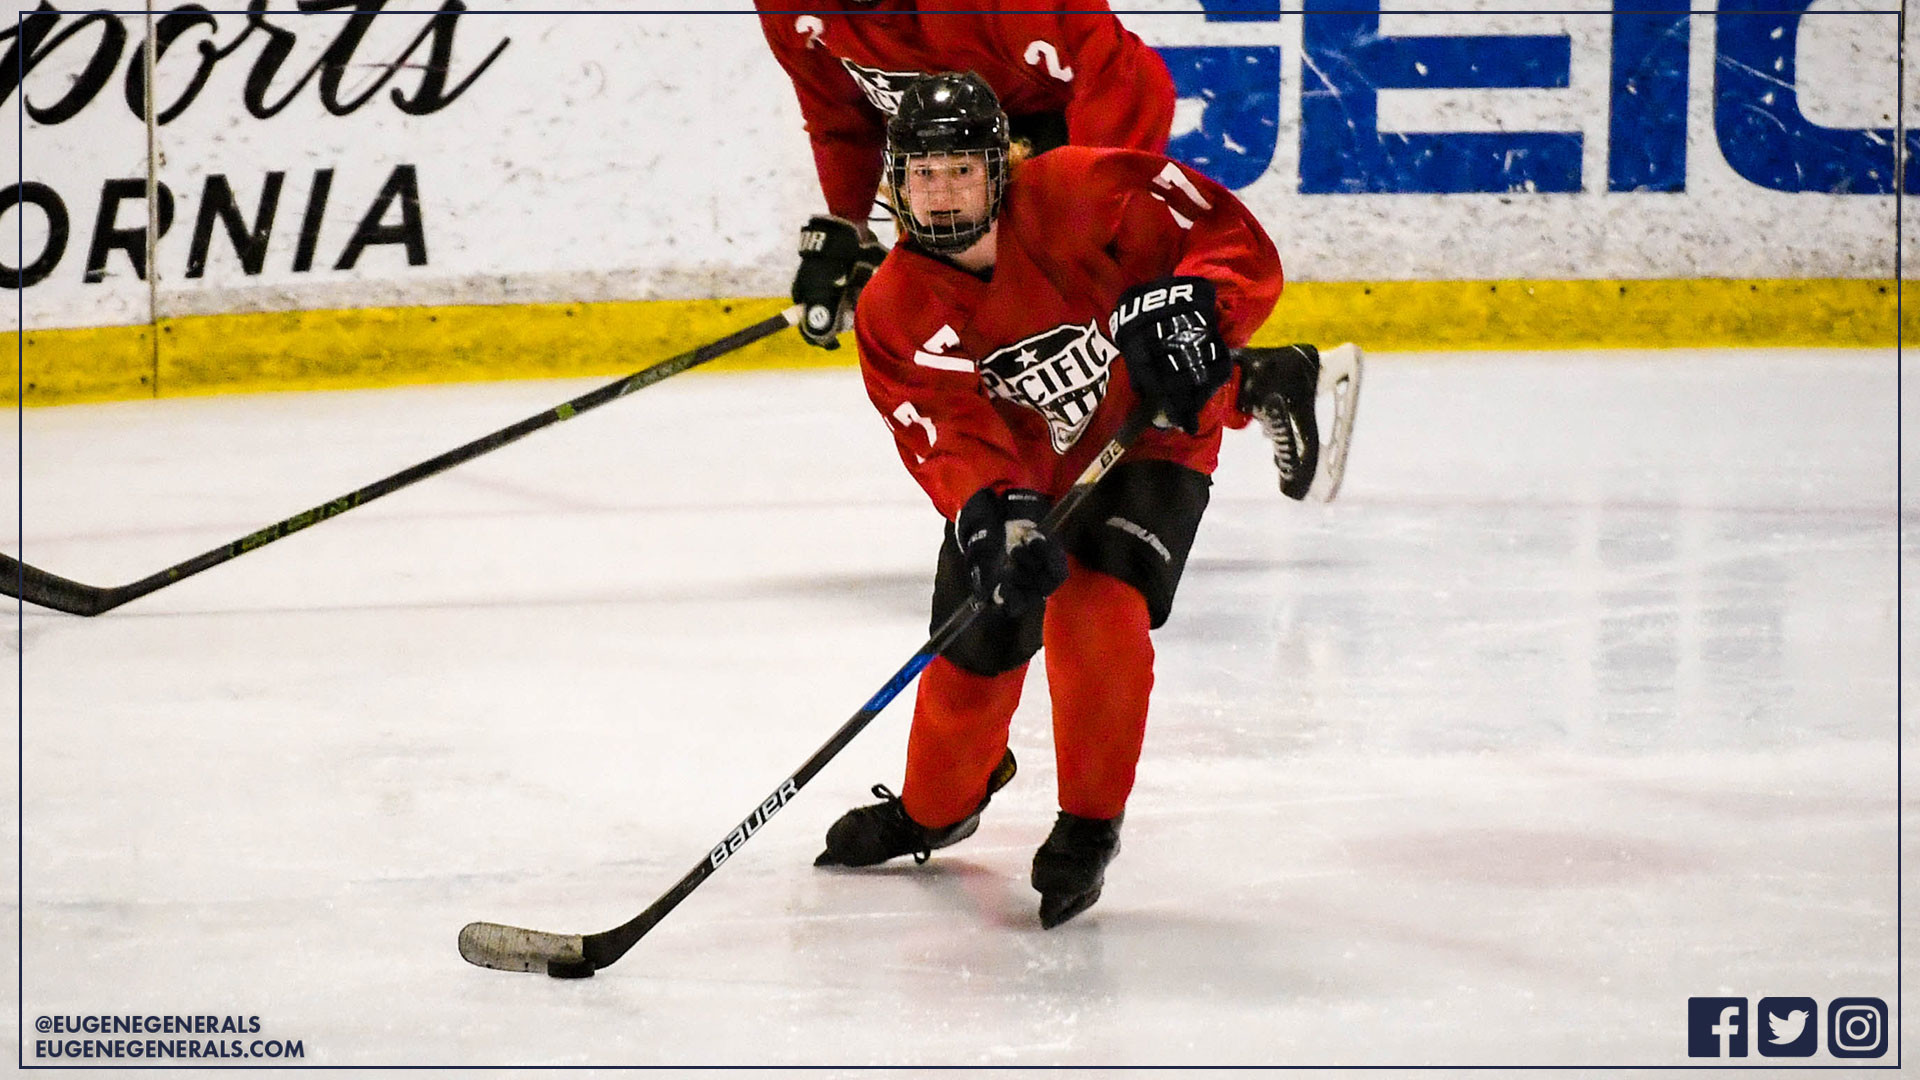 Res: 1920x1080, Minchin (above) participates at the 2017 USA Hockey Pacific District Player  Development Camp in San Jose, California.